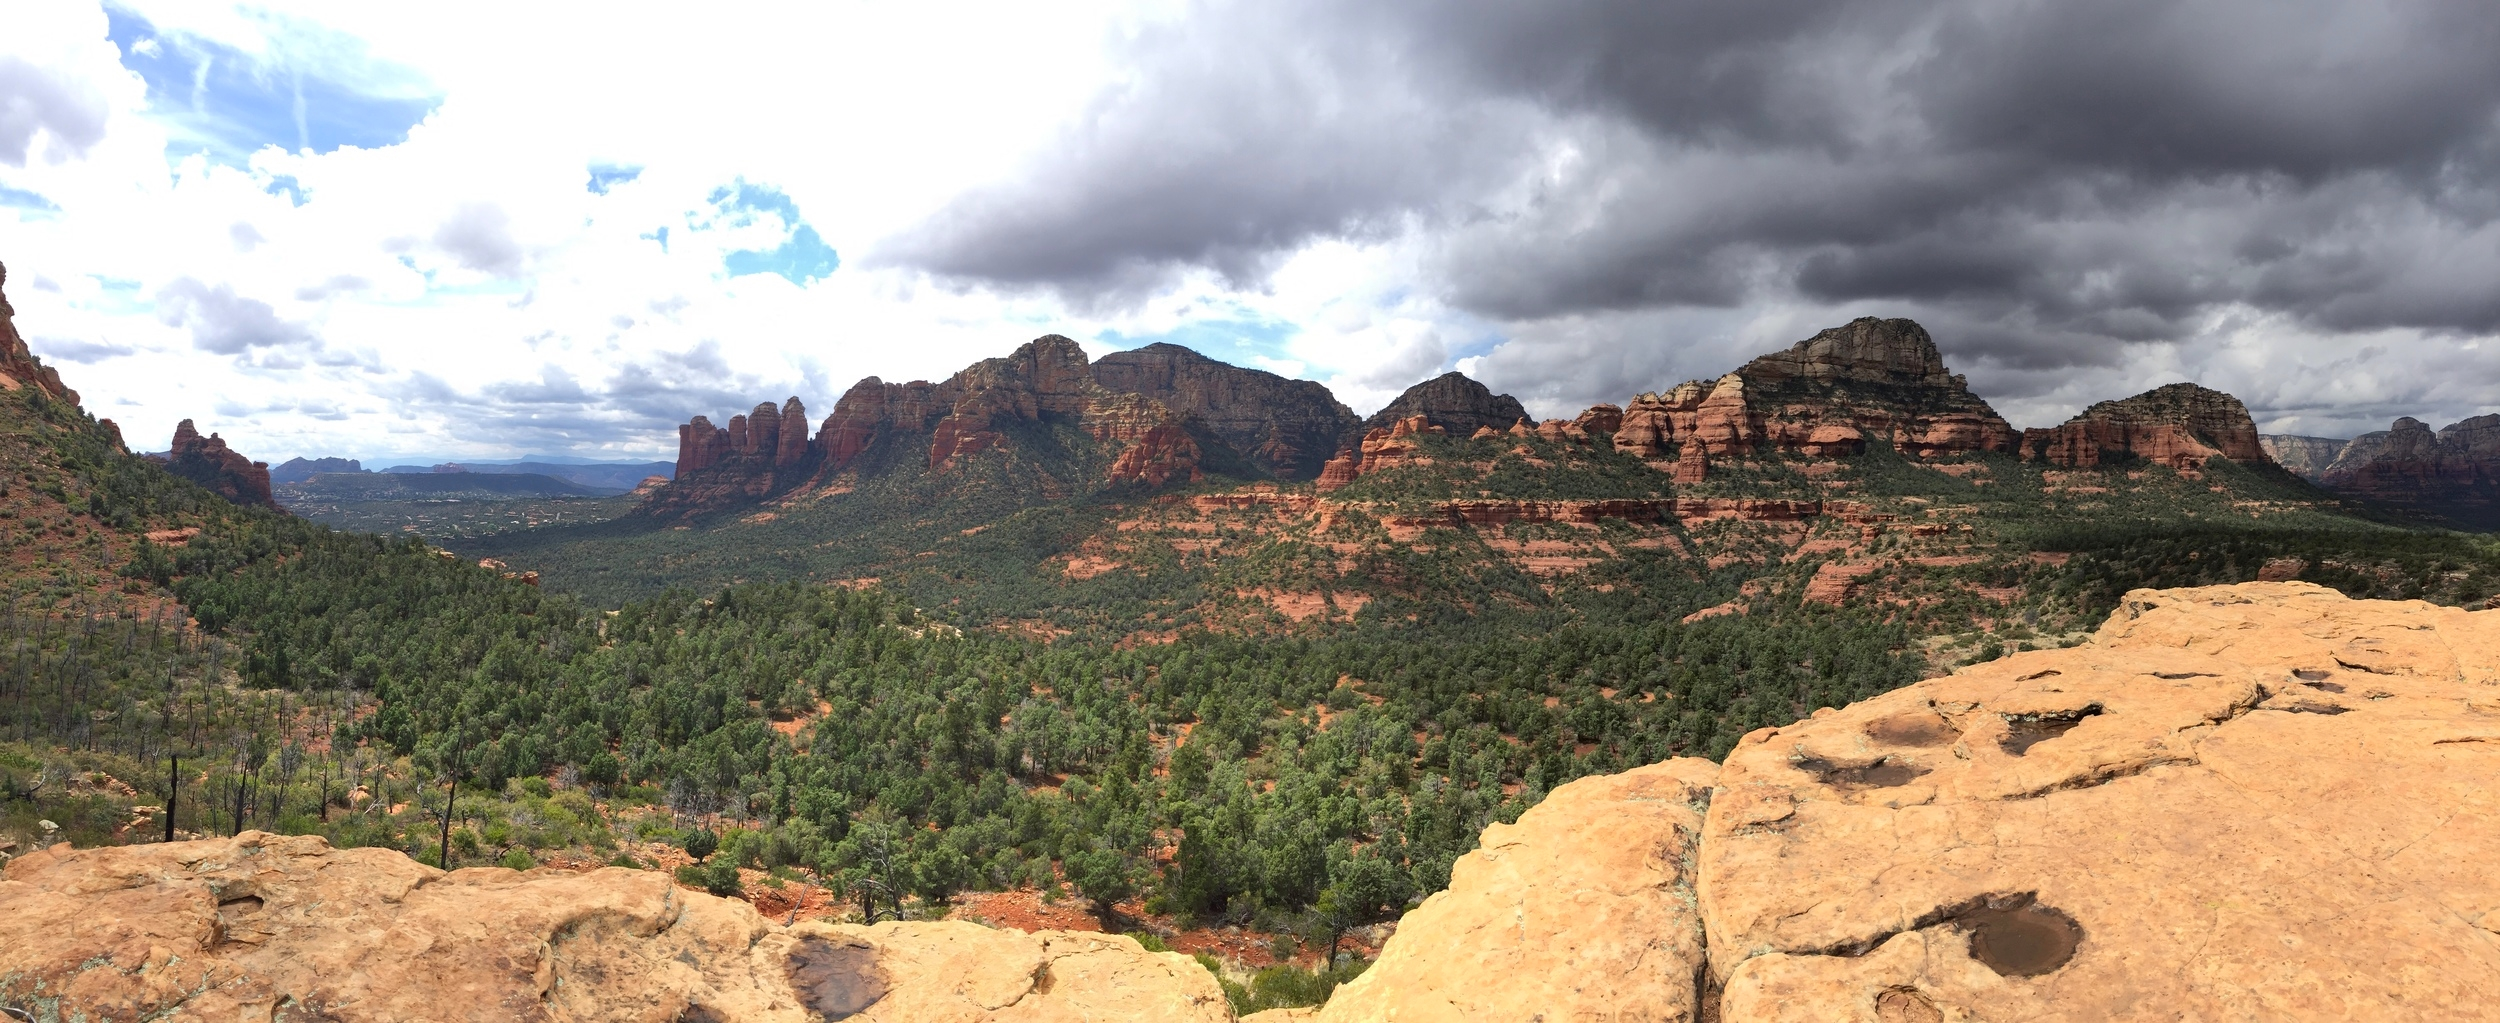 View from Soldiers Pass hike in Sedona